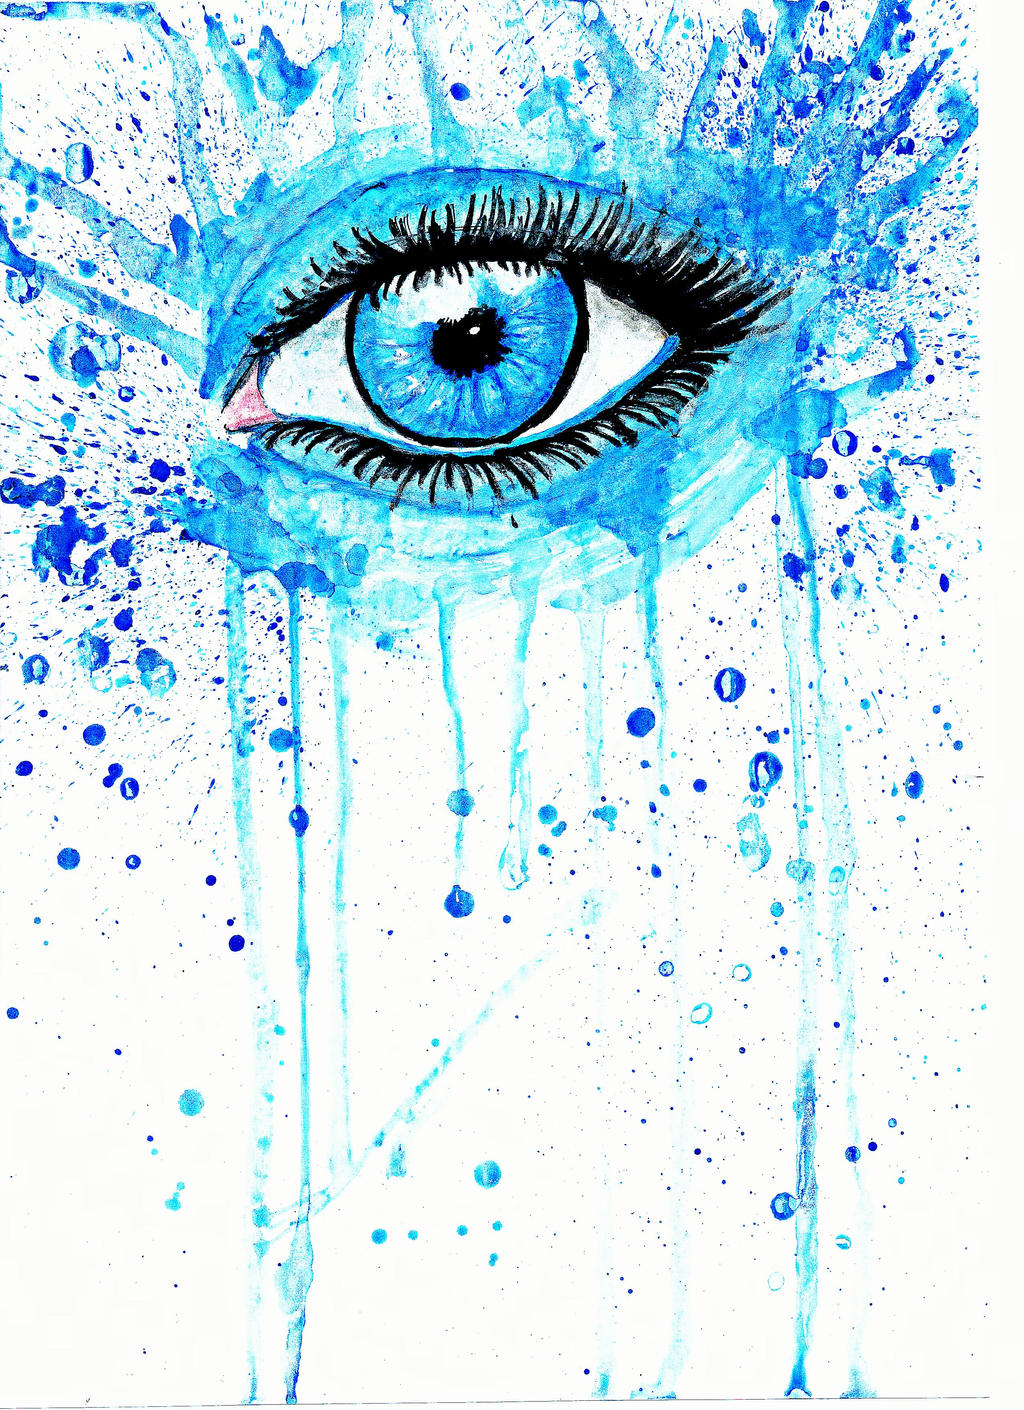 Watercolor Eye by Nana749